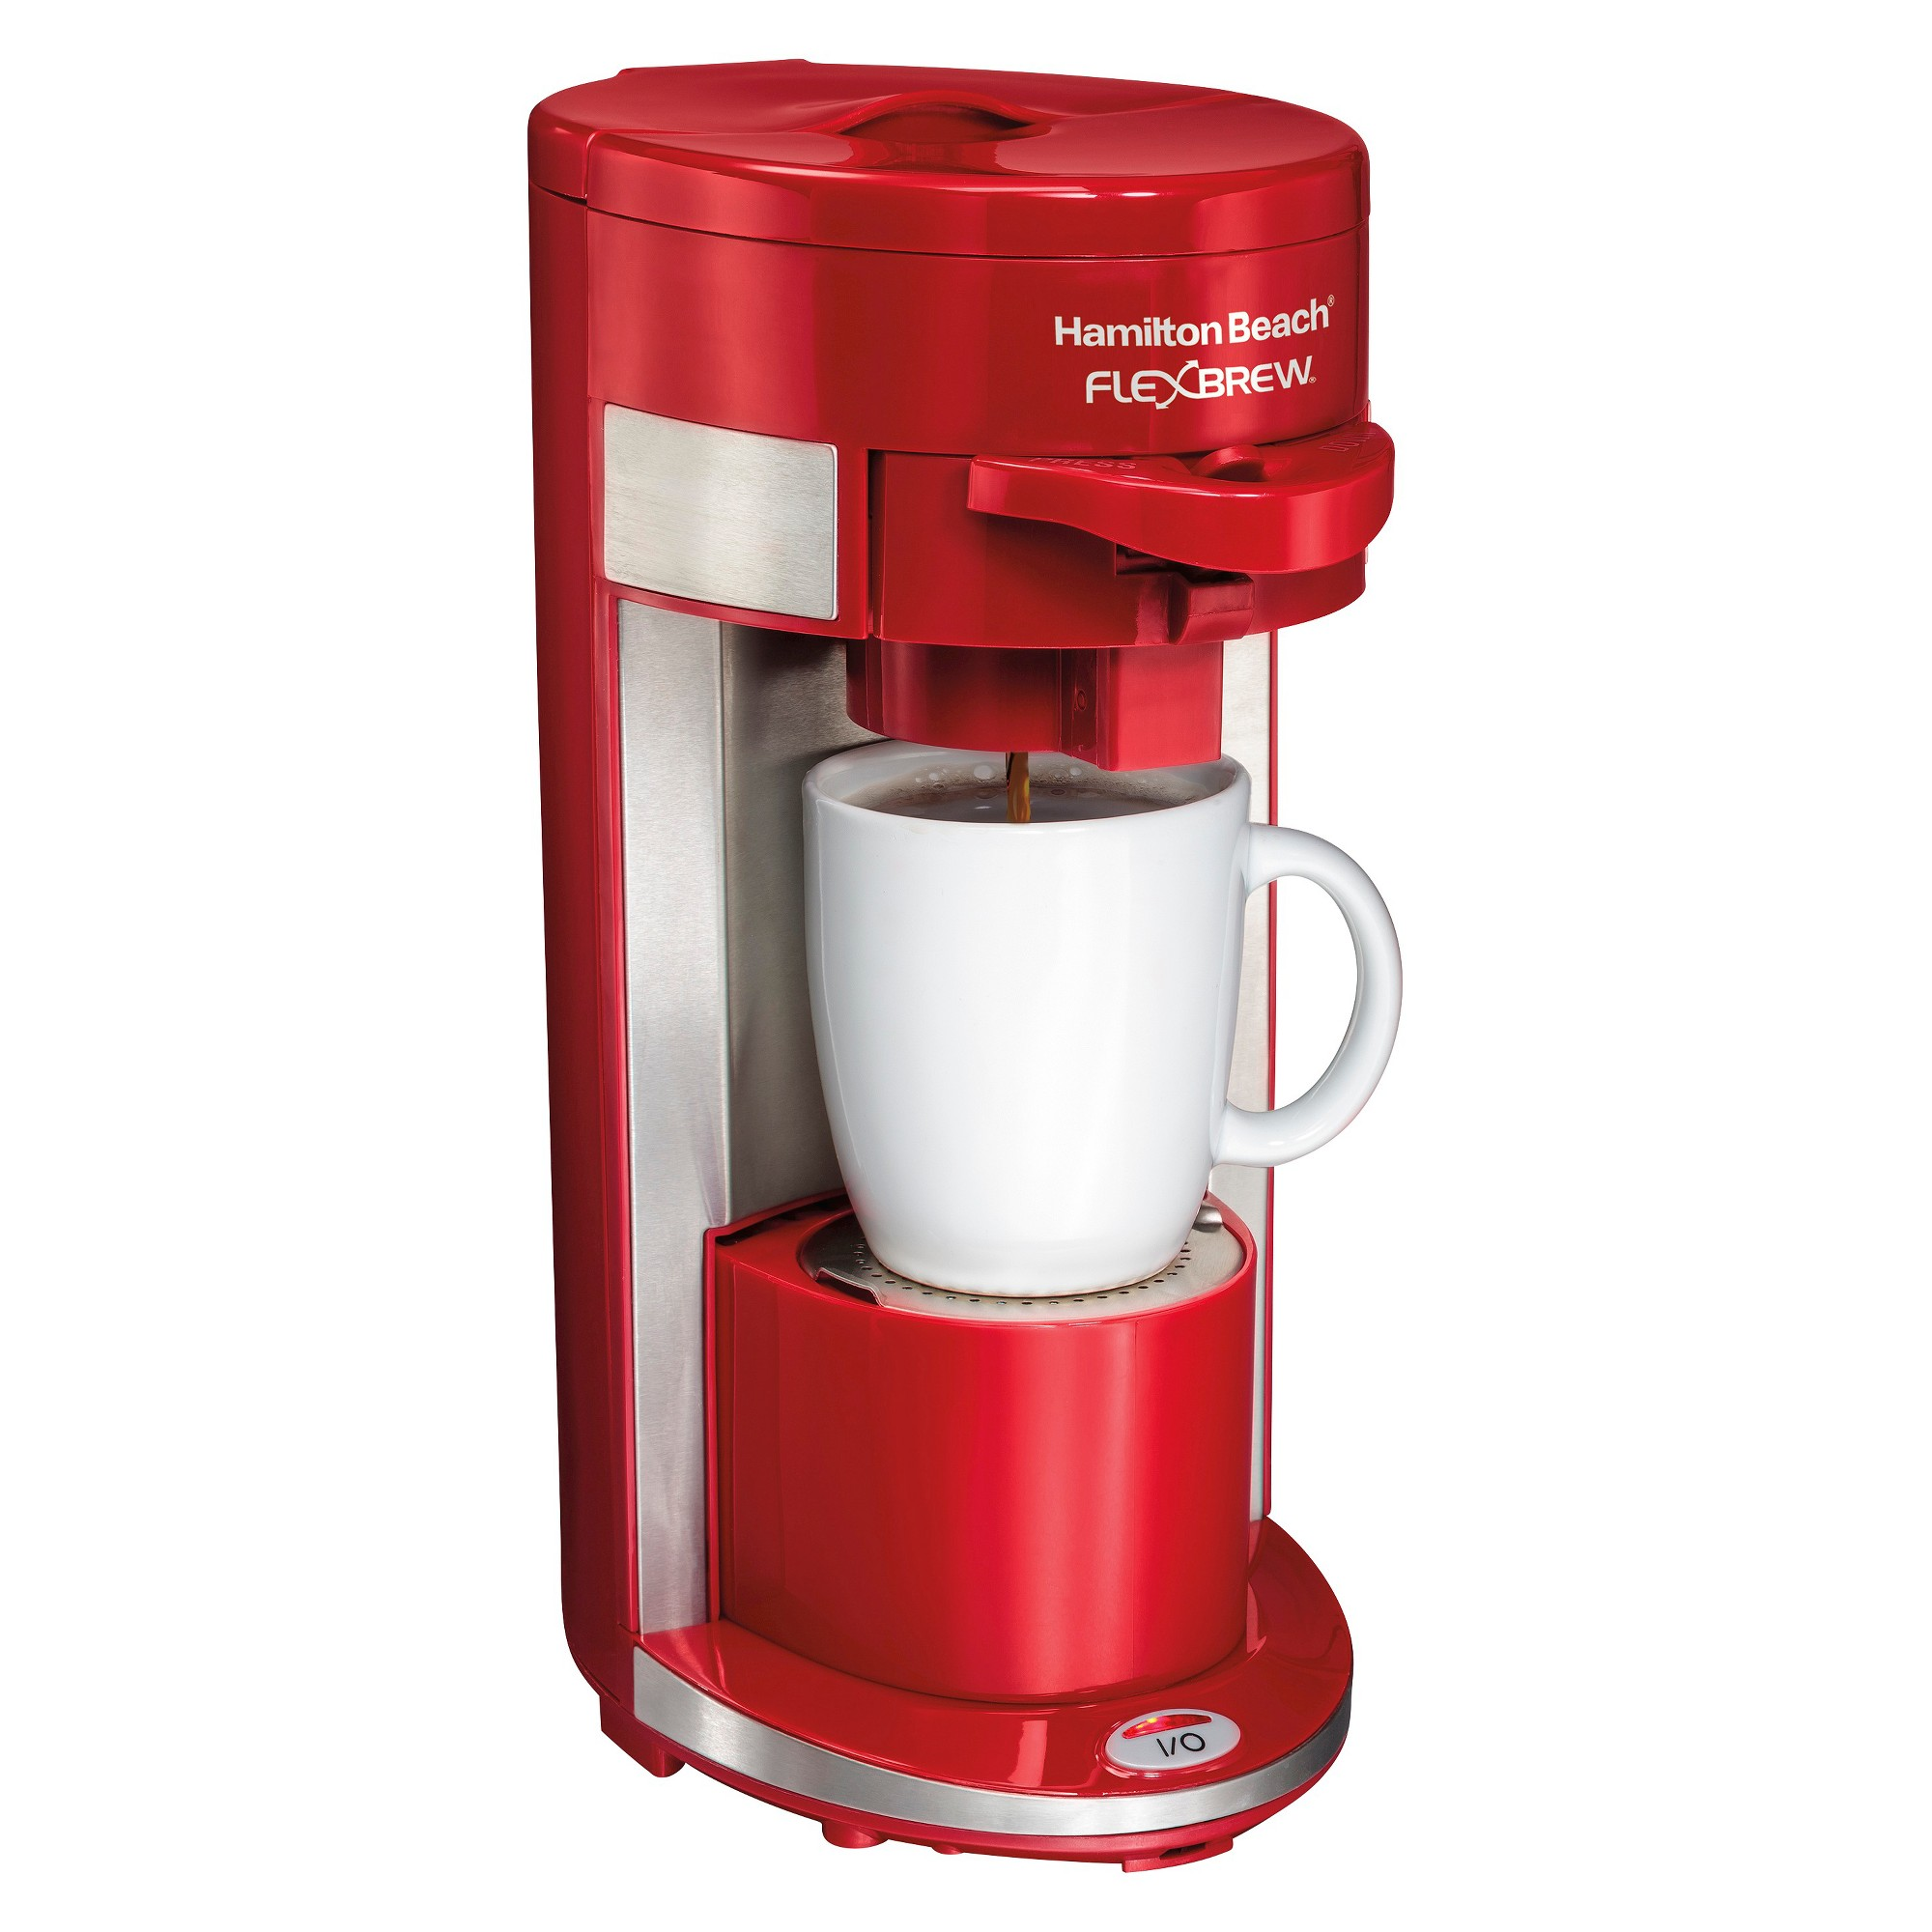 Hamilton Beach Flexbrew Single Serve Coffee Maker Red49962 Red